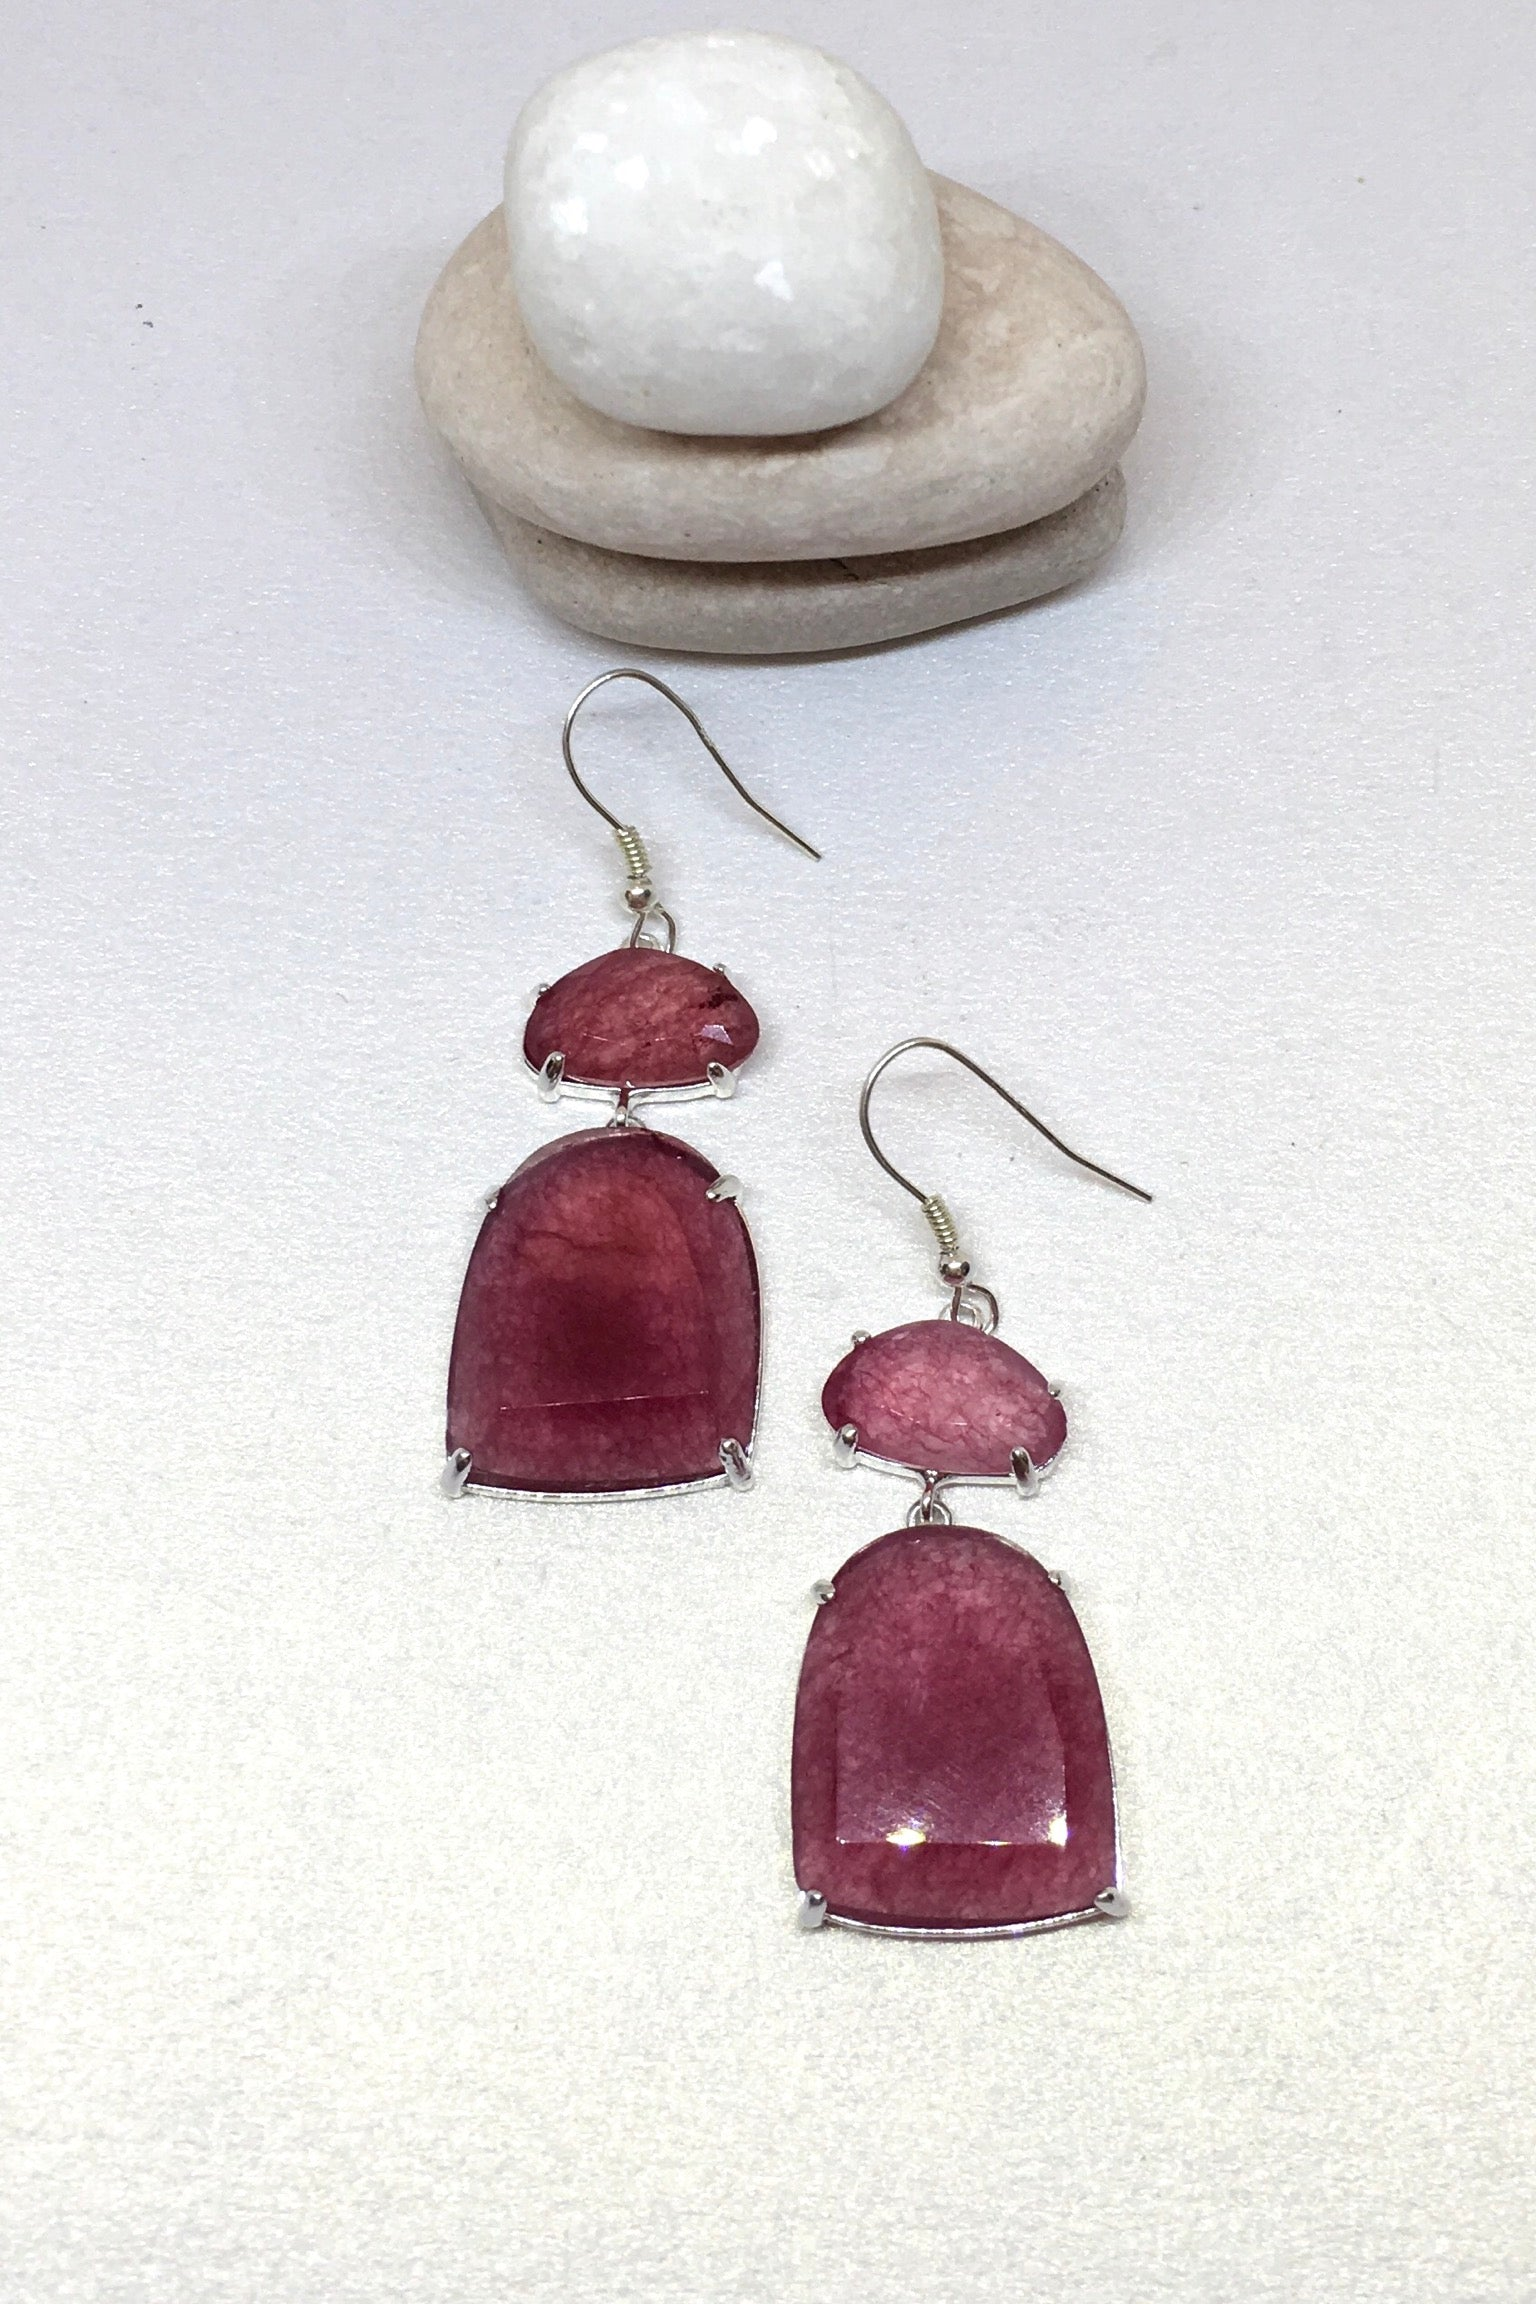 Coloured Quartz and Silver Earrings, Boho Style jewellery, colourful Drop Earrings in natural rock crystal